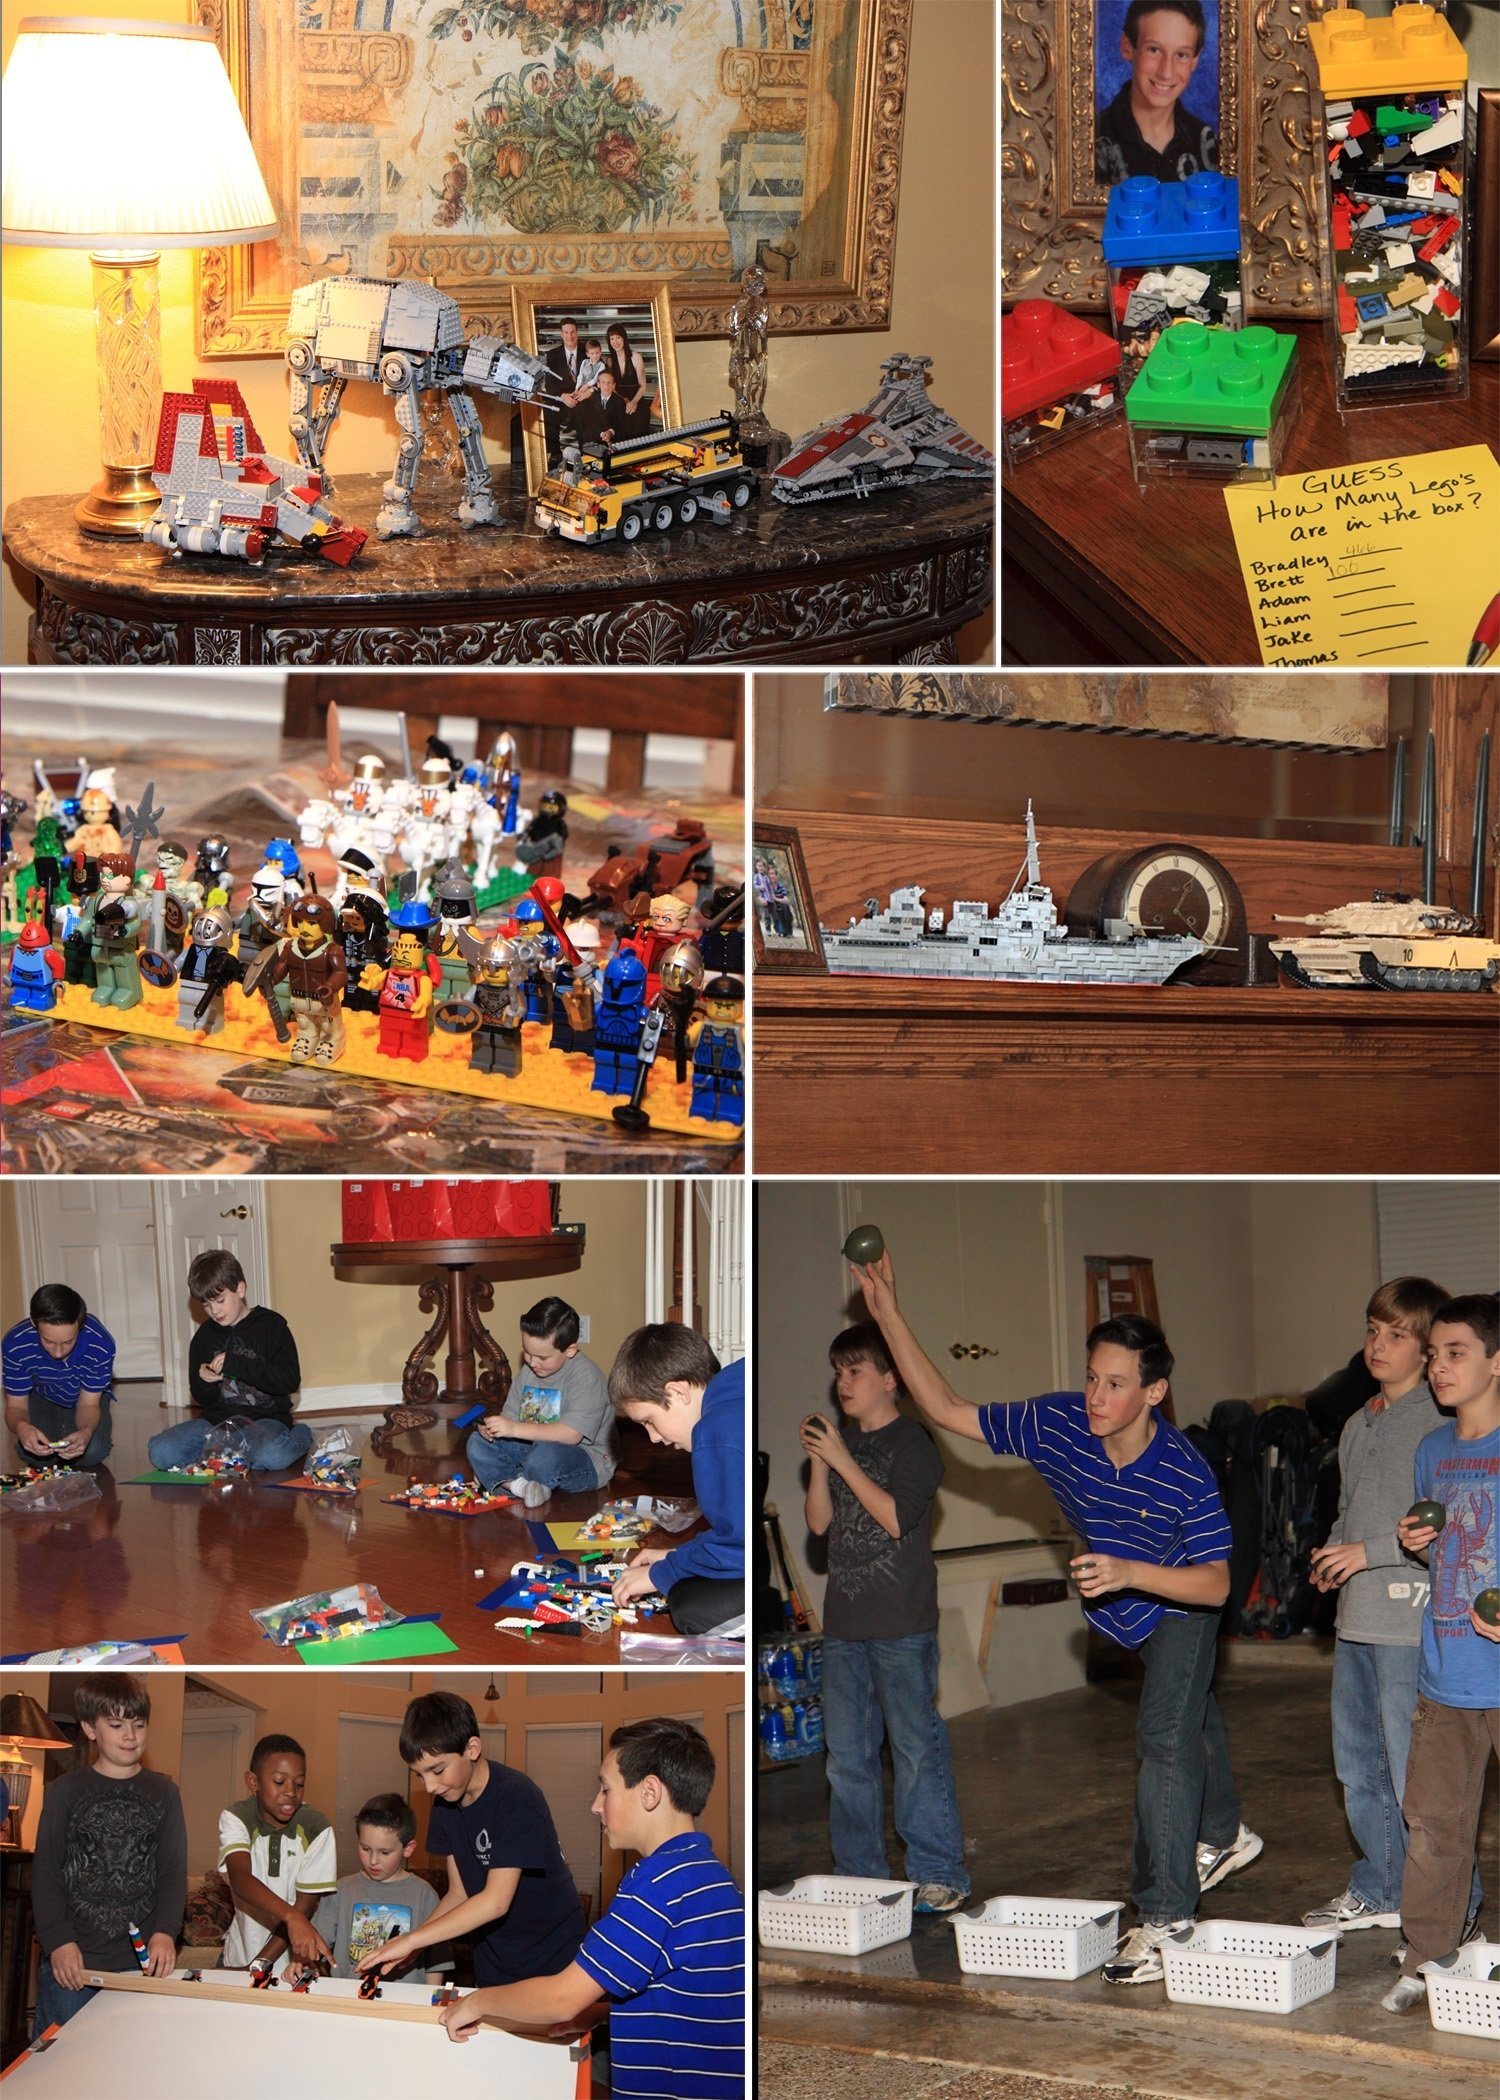 10 Lovely Birthday Party Ideas For A 12 Year Old Boy fancy idea 12 year old birthday party games ideas an 11 boy s lego 7 2020